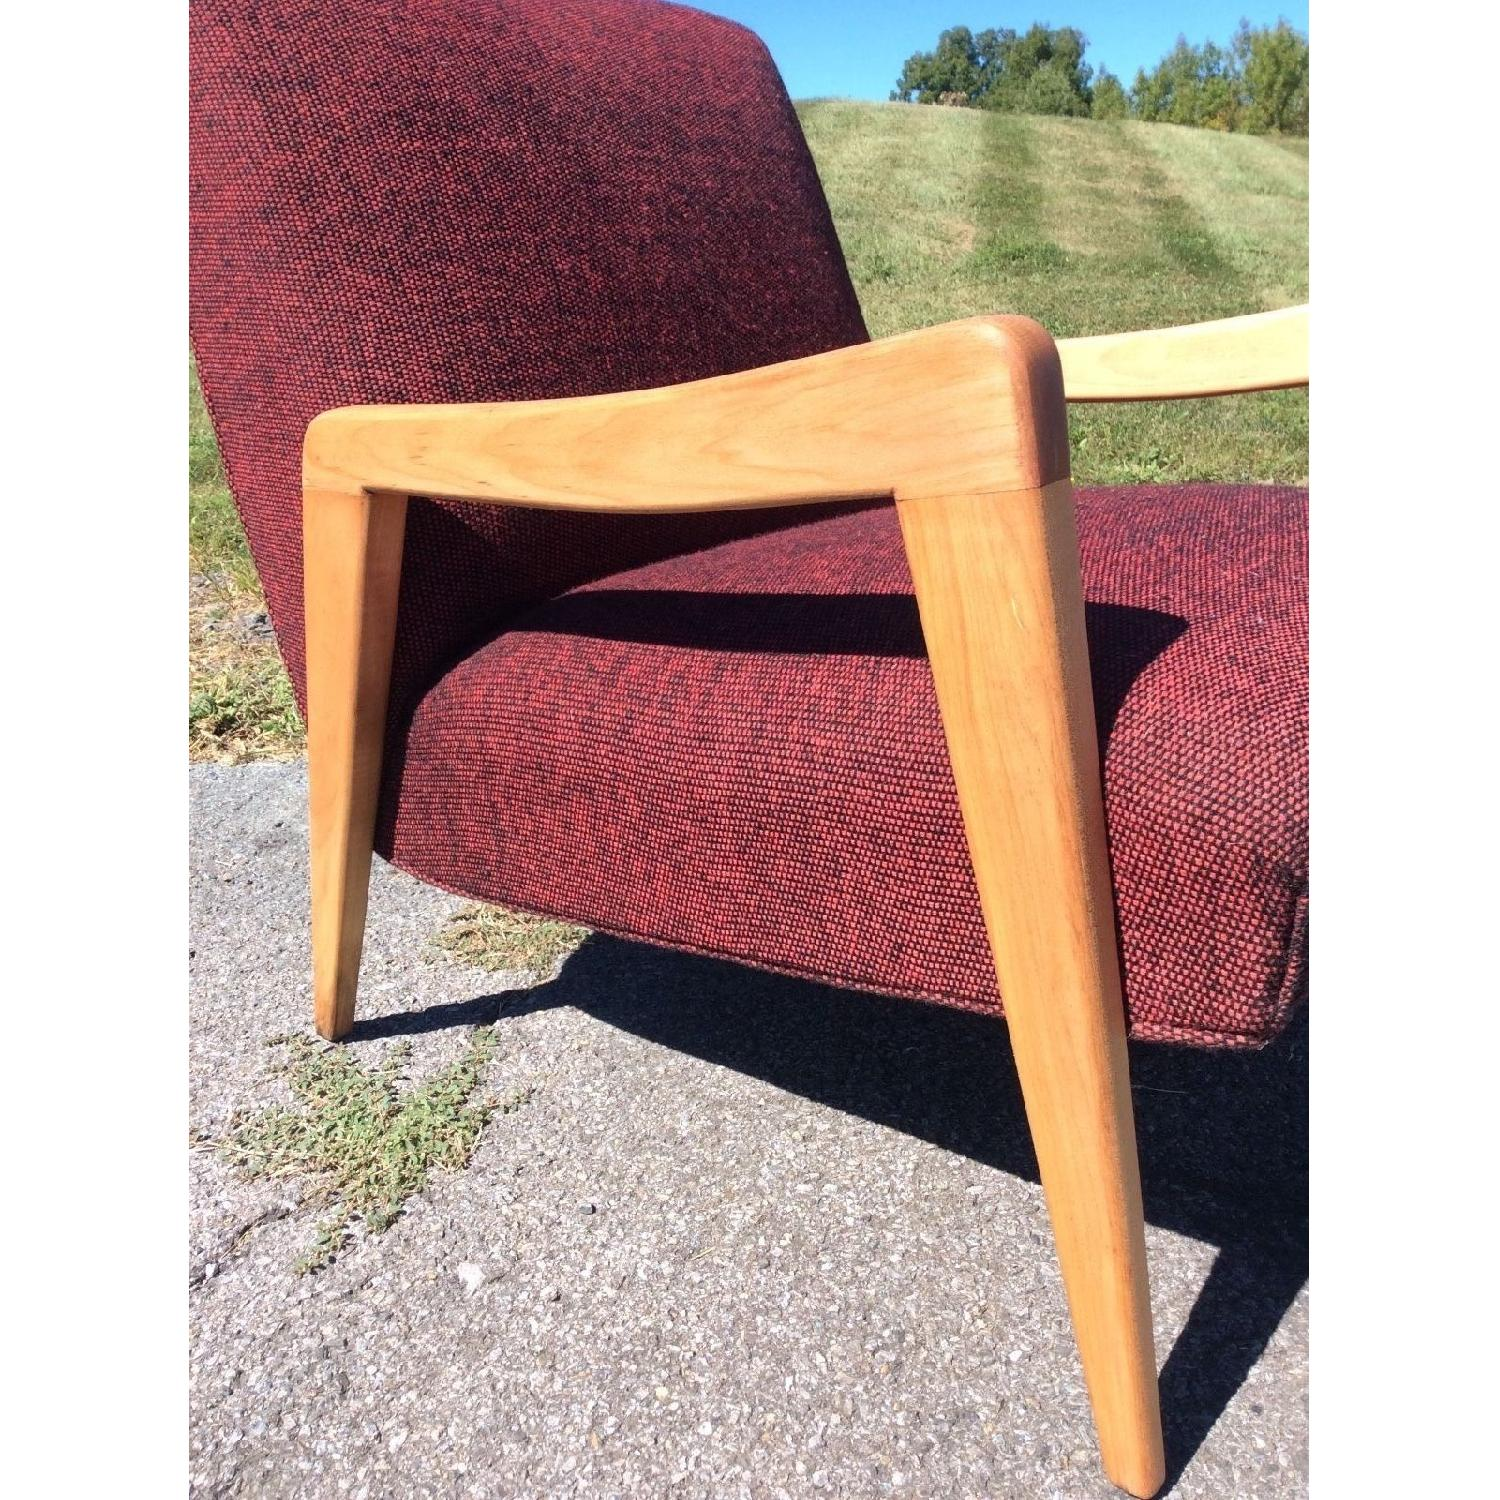 Russel Wright Conant Ball Birch Mid Century Modern Lounge Chair - image-2